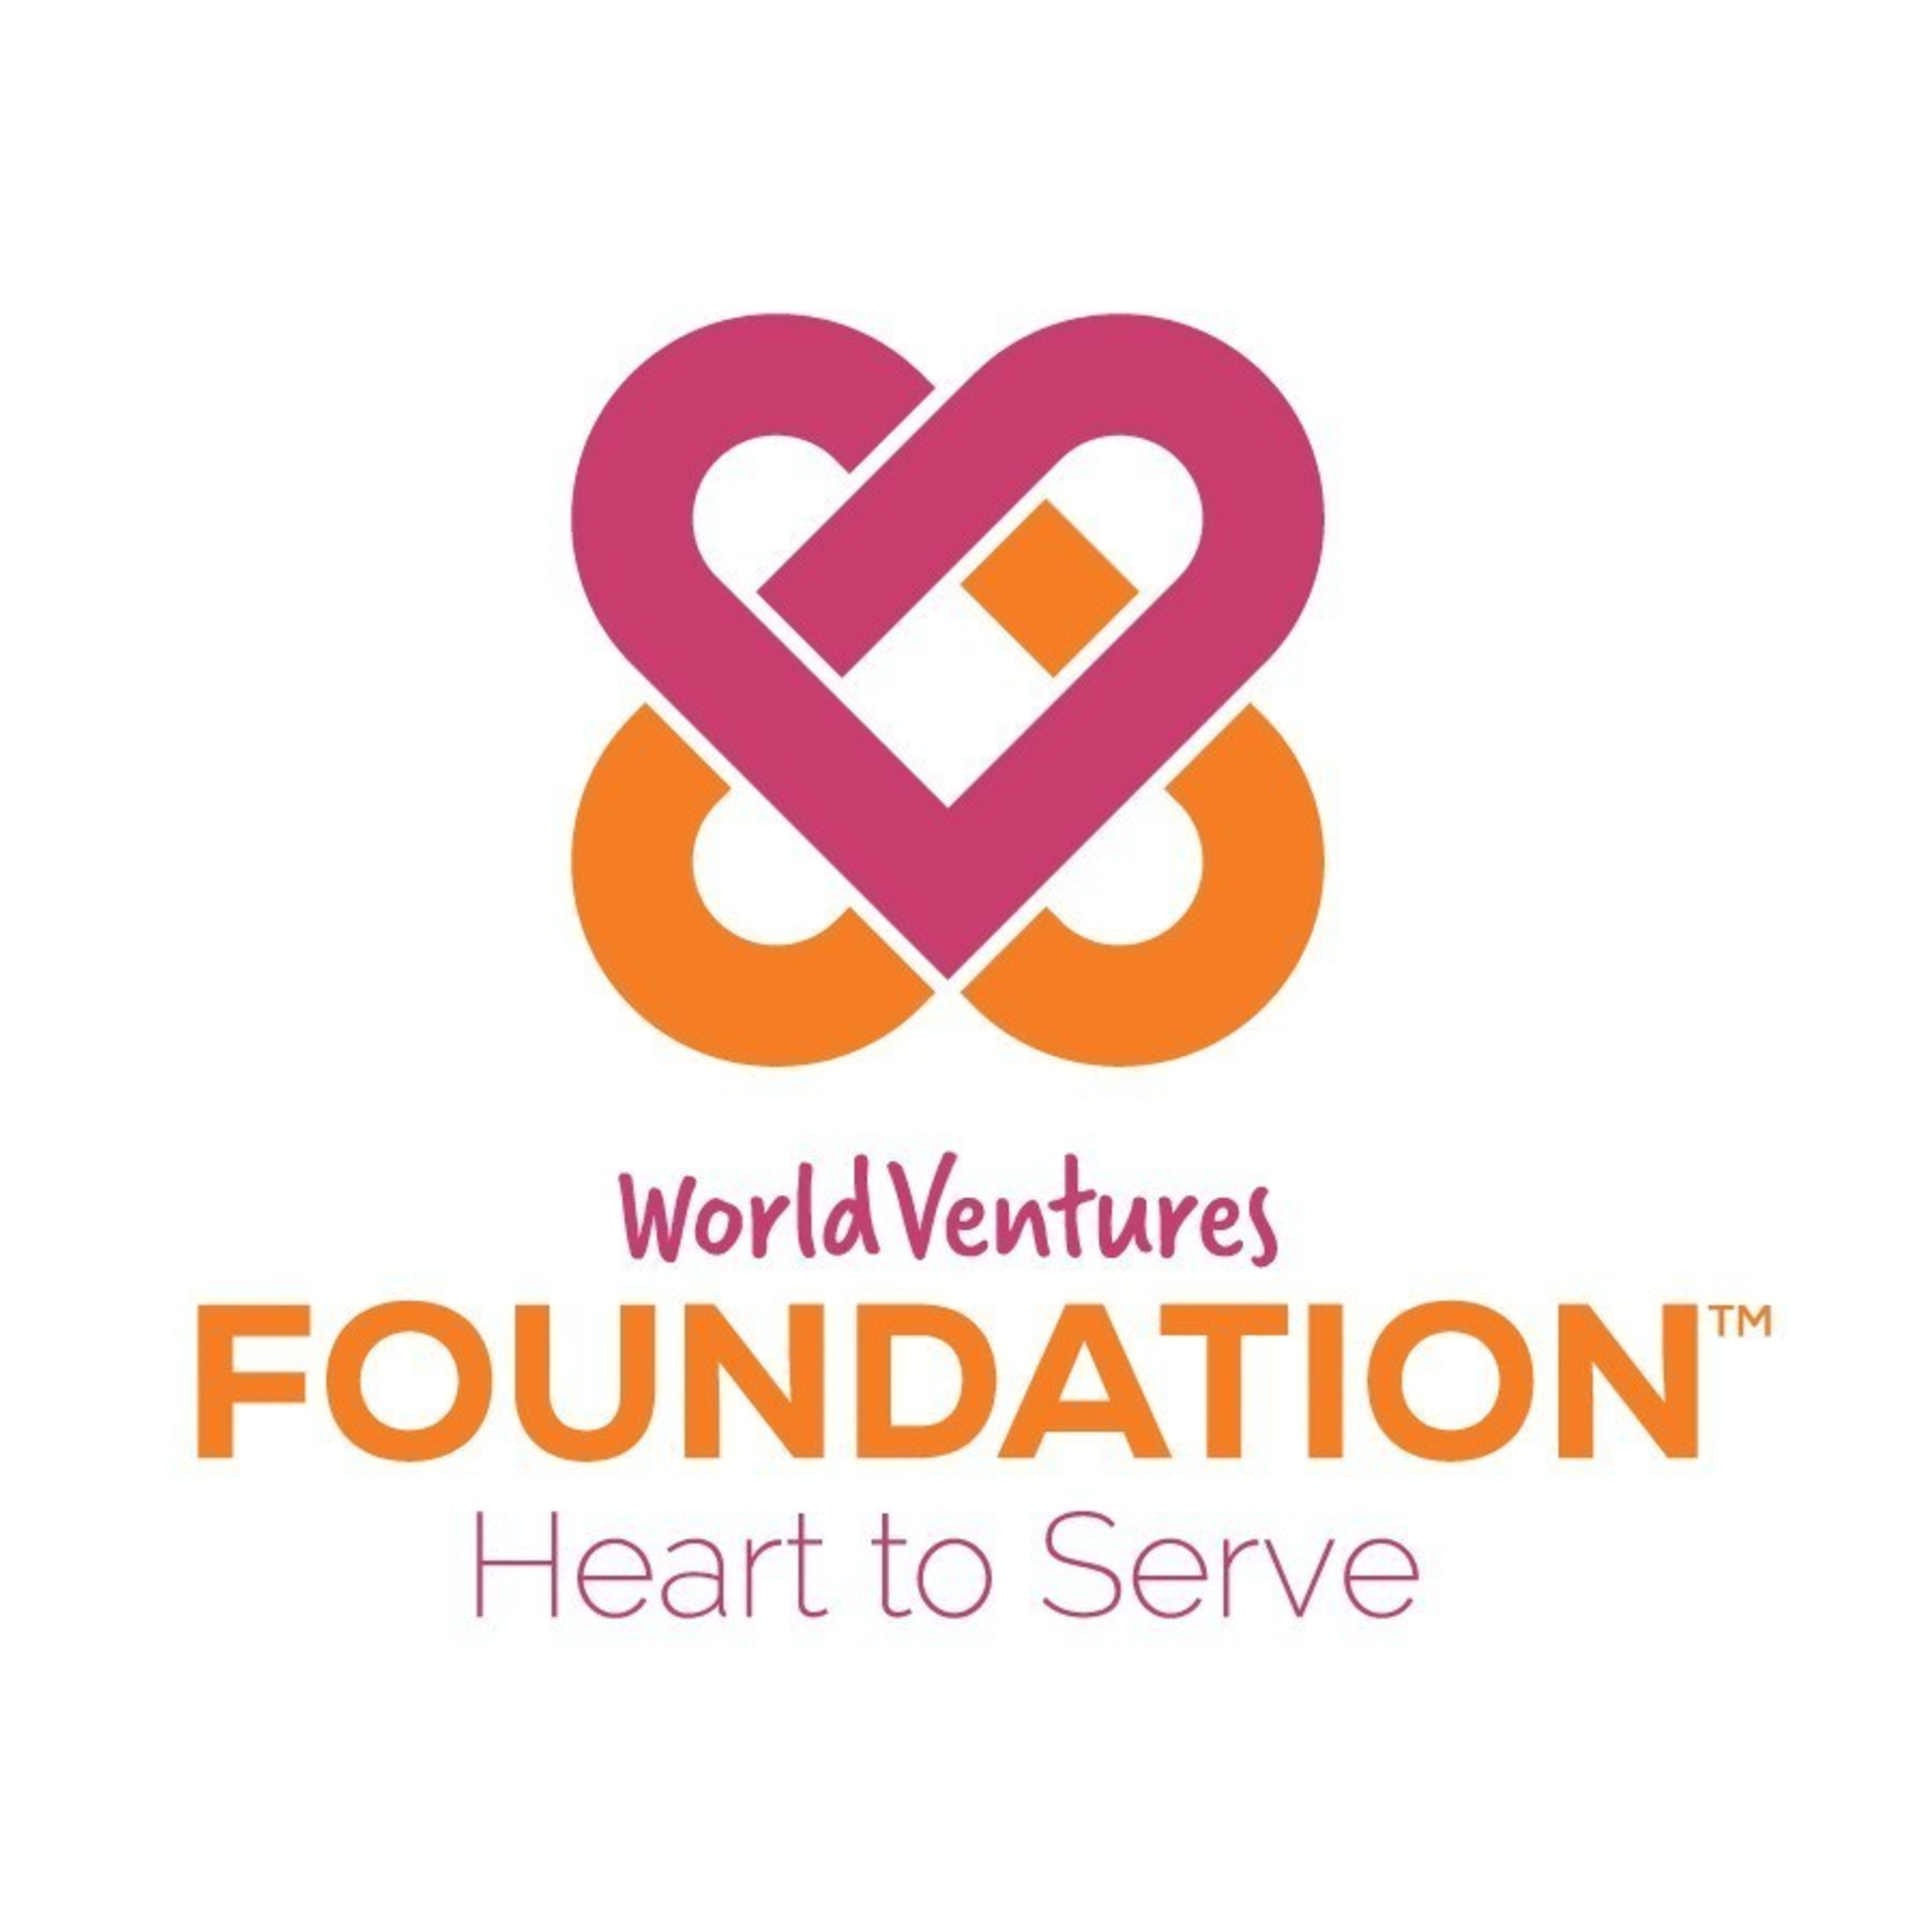 New WorldVentures Foundation branding invites Independent Representatives, DreamTrips Members and employees to have the Heart to Serve.